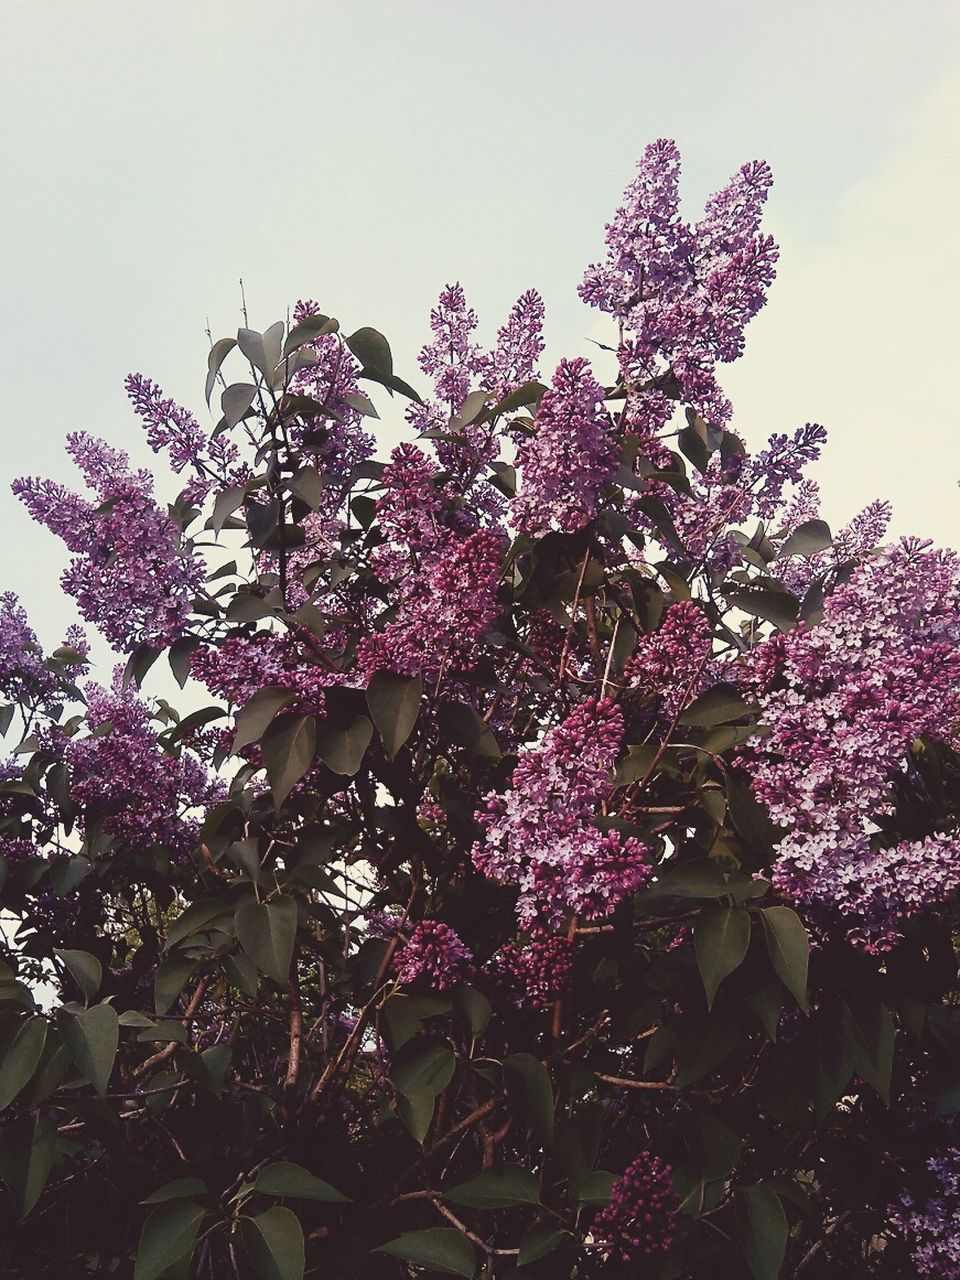 flower, nature, fragility, beauty in nature, growth, low angle view, tree, freshness, blossom, purple, no people, lilac, springtime, pink color, day, outdoors, branch, plant, sky, close-up, flower head